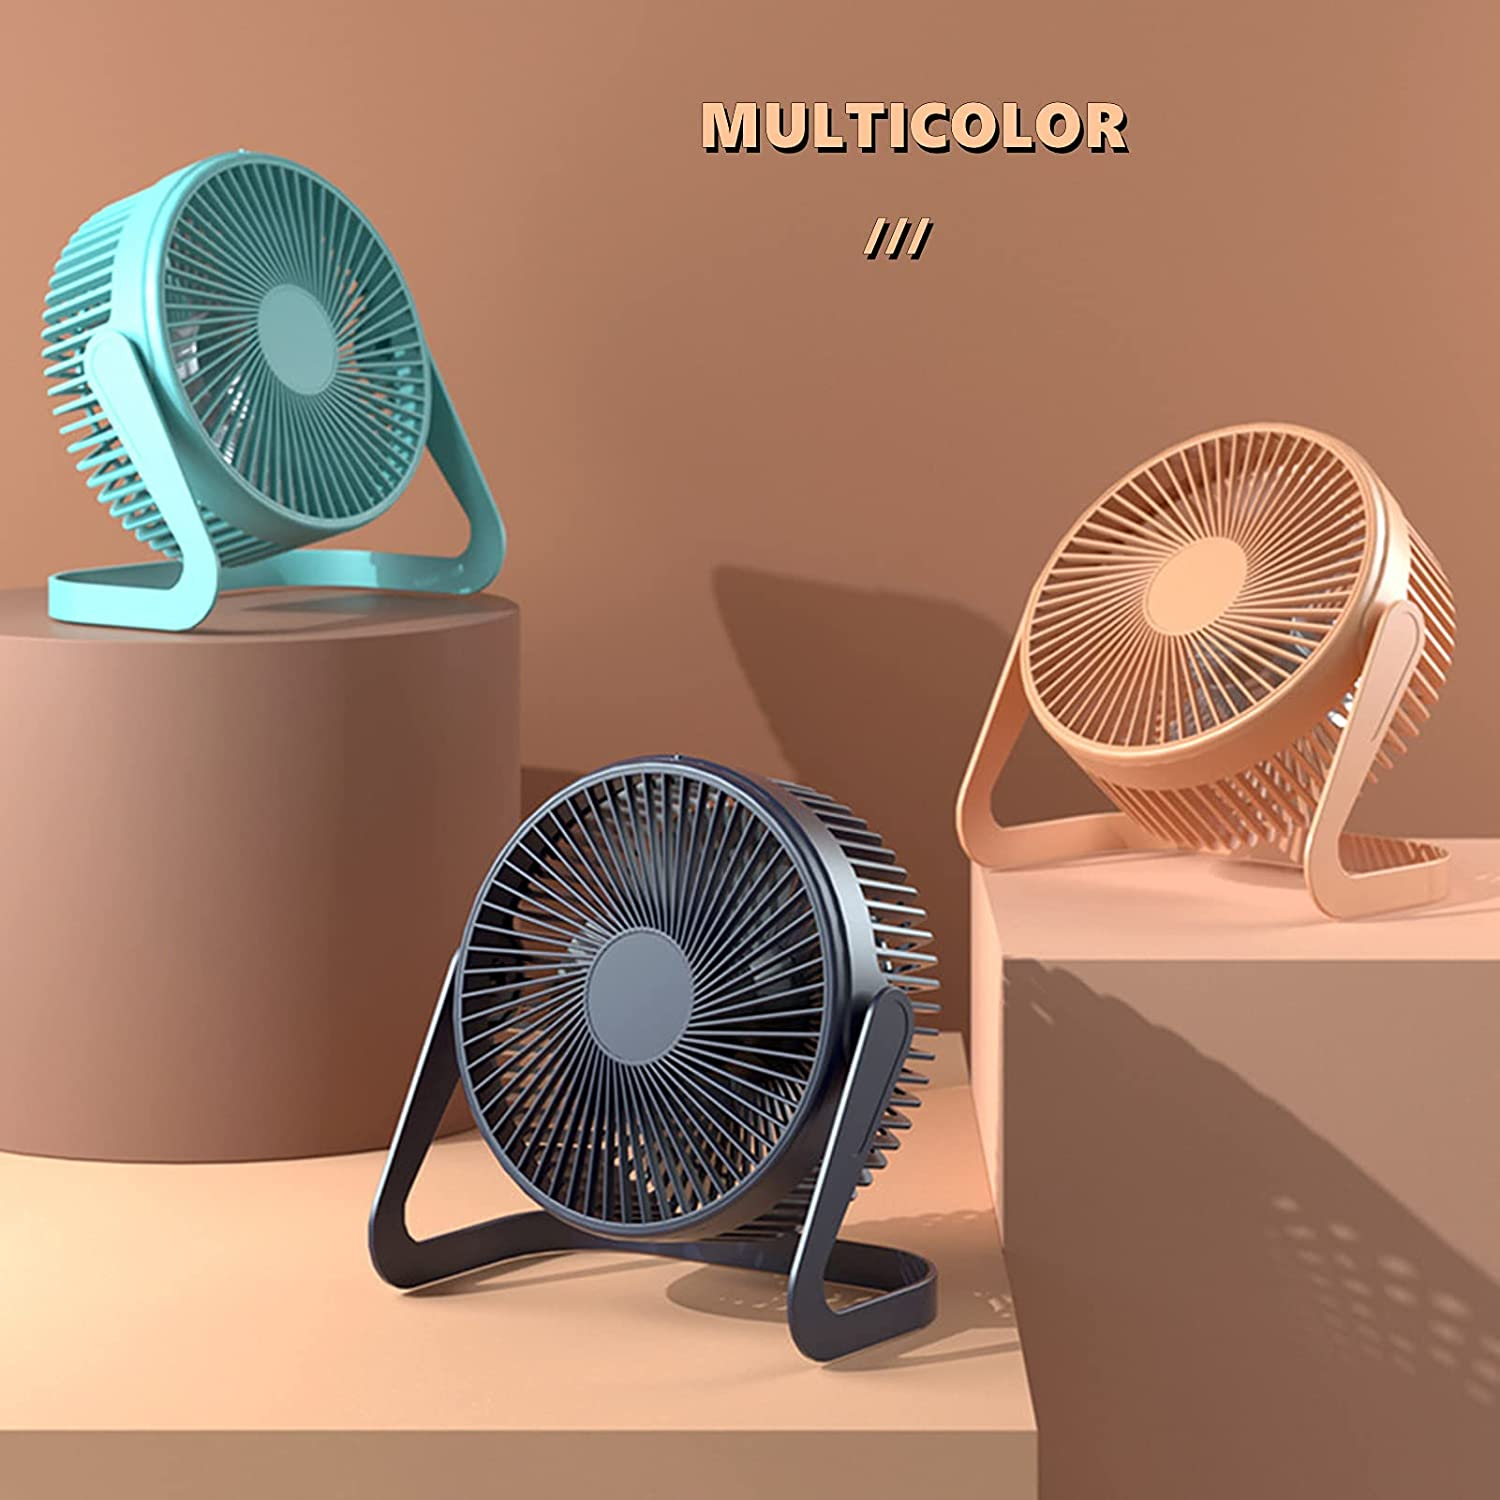 USB Fan 5 Inch Mini USB Desk Table Fan Personal Portable Desktop Cooling Fan Powered by USB PC Netbook for Camping Home Office Outdoor Travel, Strong Wind, Green